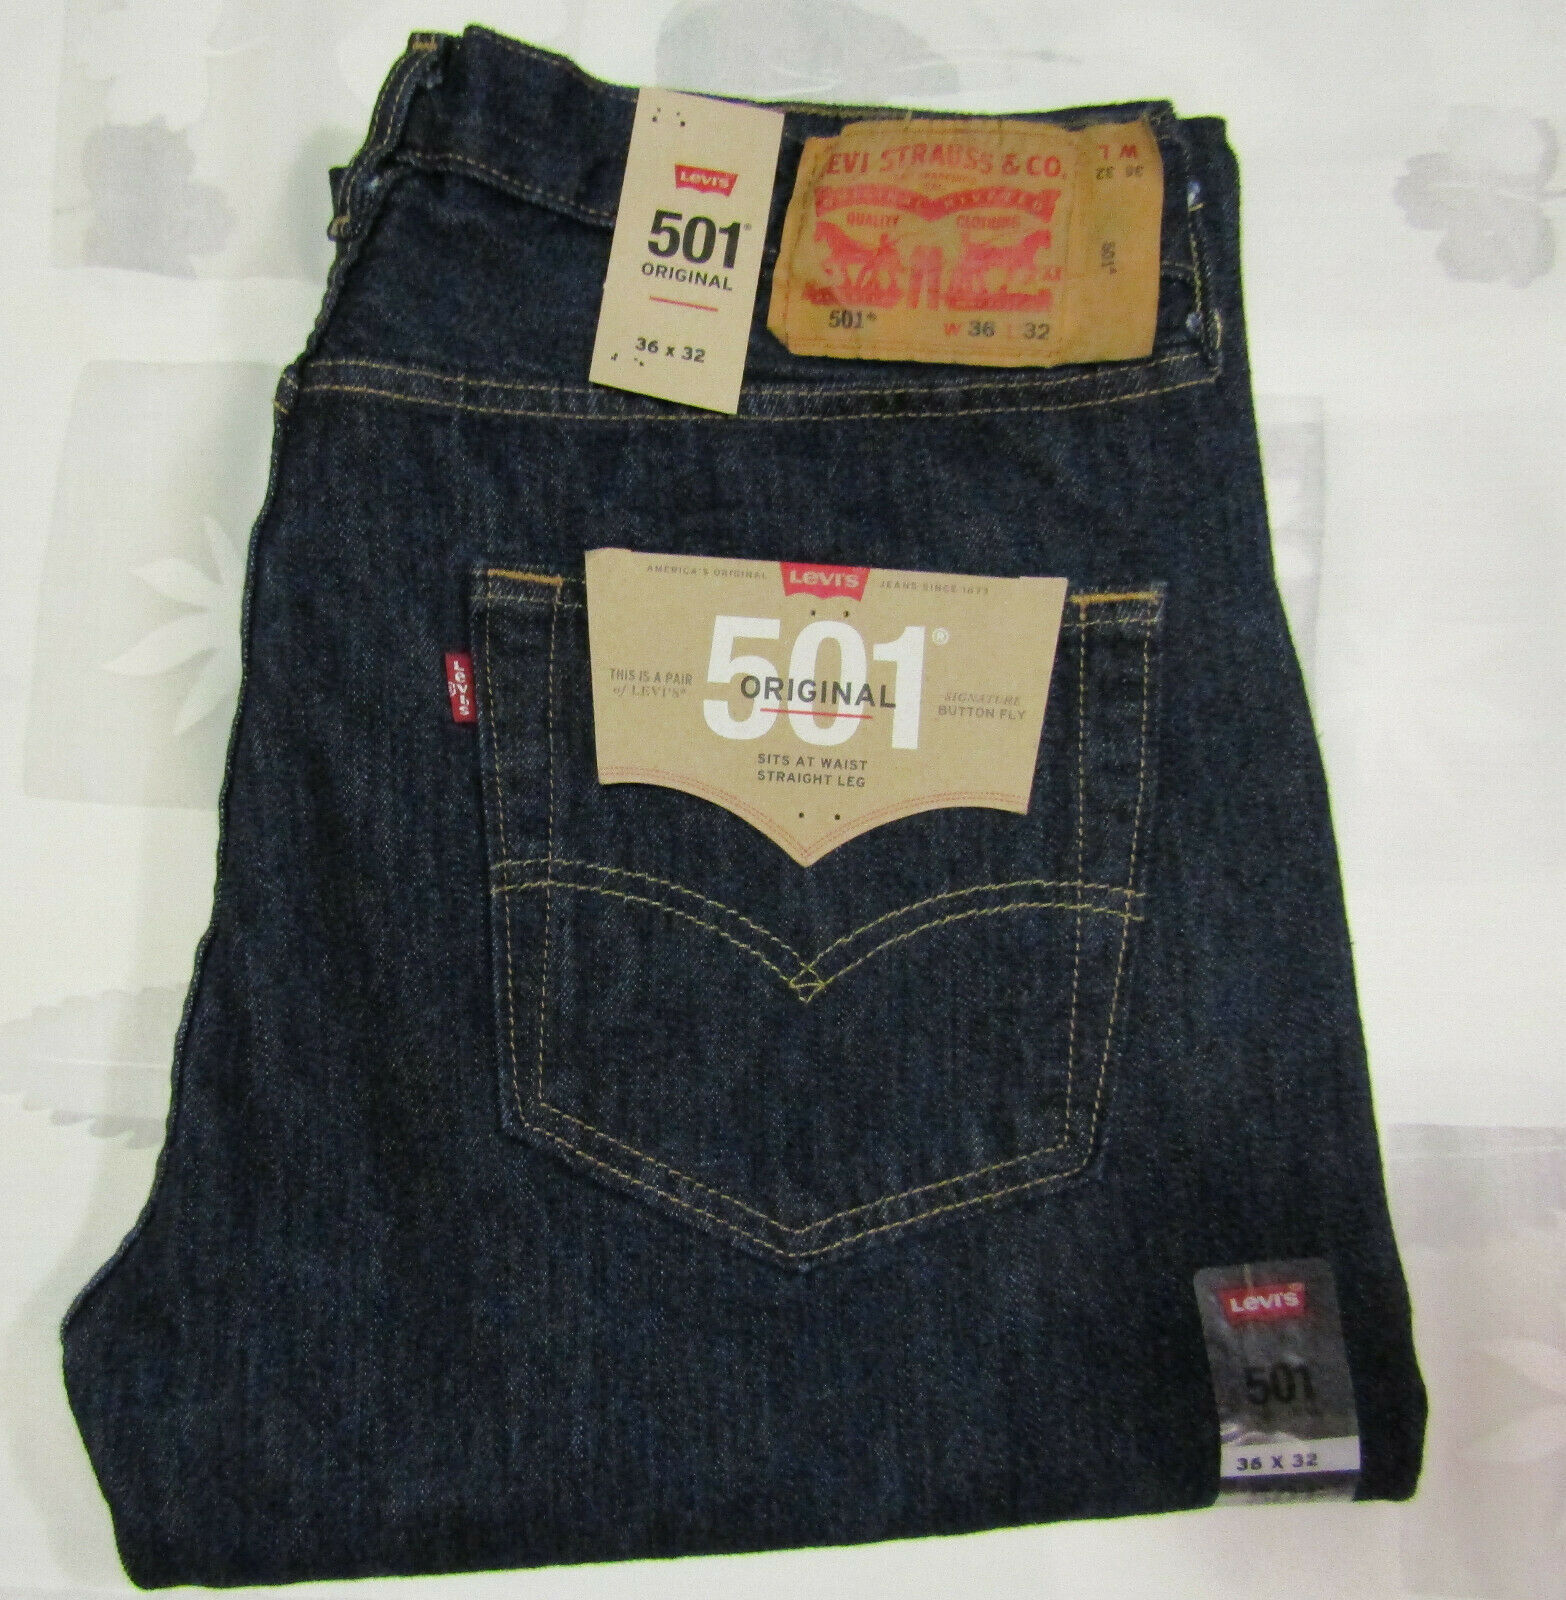 Primary image for Levis Strauss 501 36 X 32 Mens Blue Jeans XX Original Cotton Denim NWT Deadstock